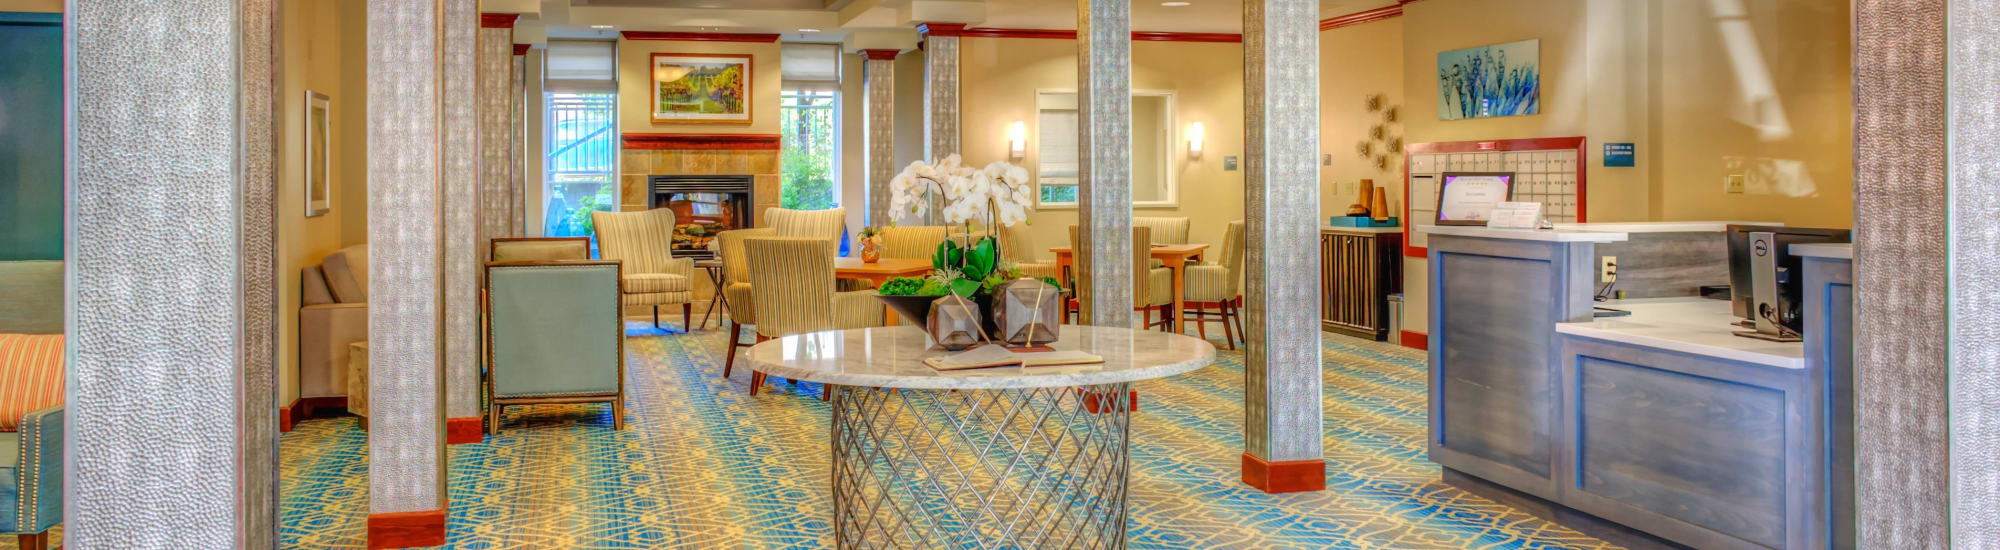 Schedule a Tour at The Creekside in Woodinville, Washington